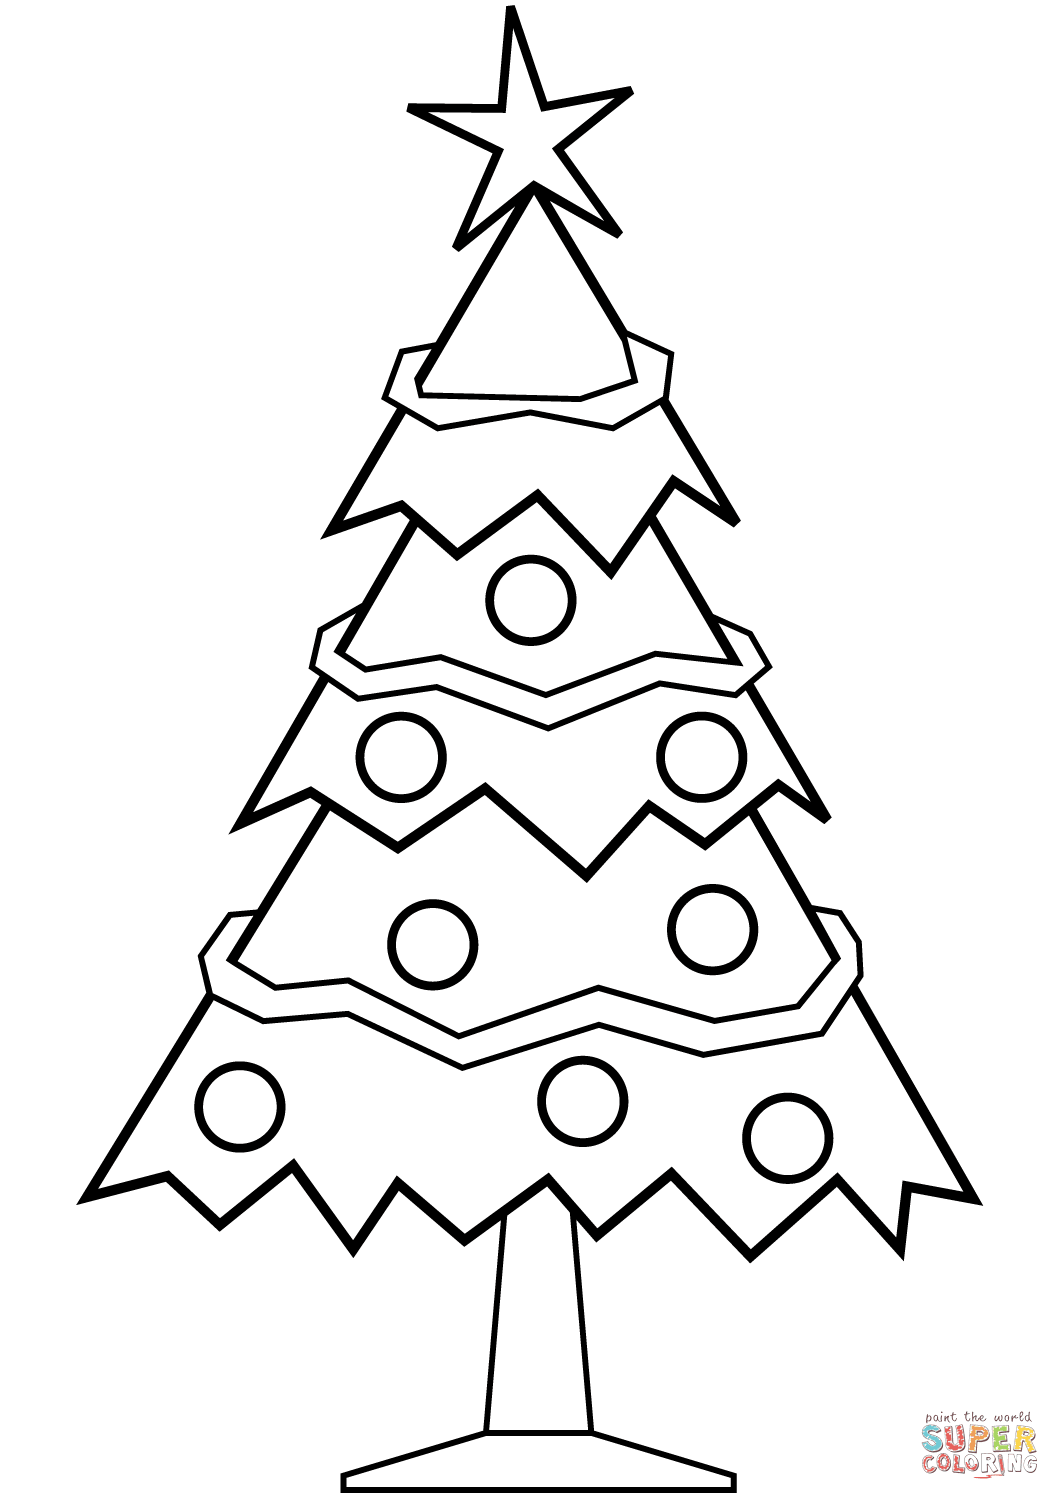 Christmas Tree Coloring Pages Image Picture Photo Wallpaper 16